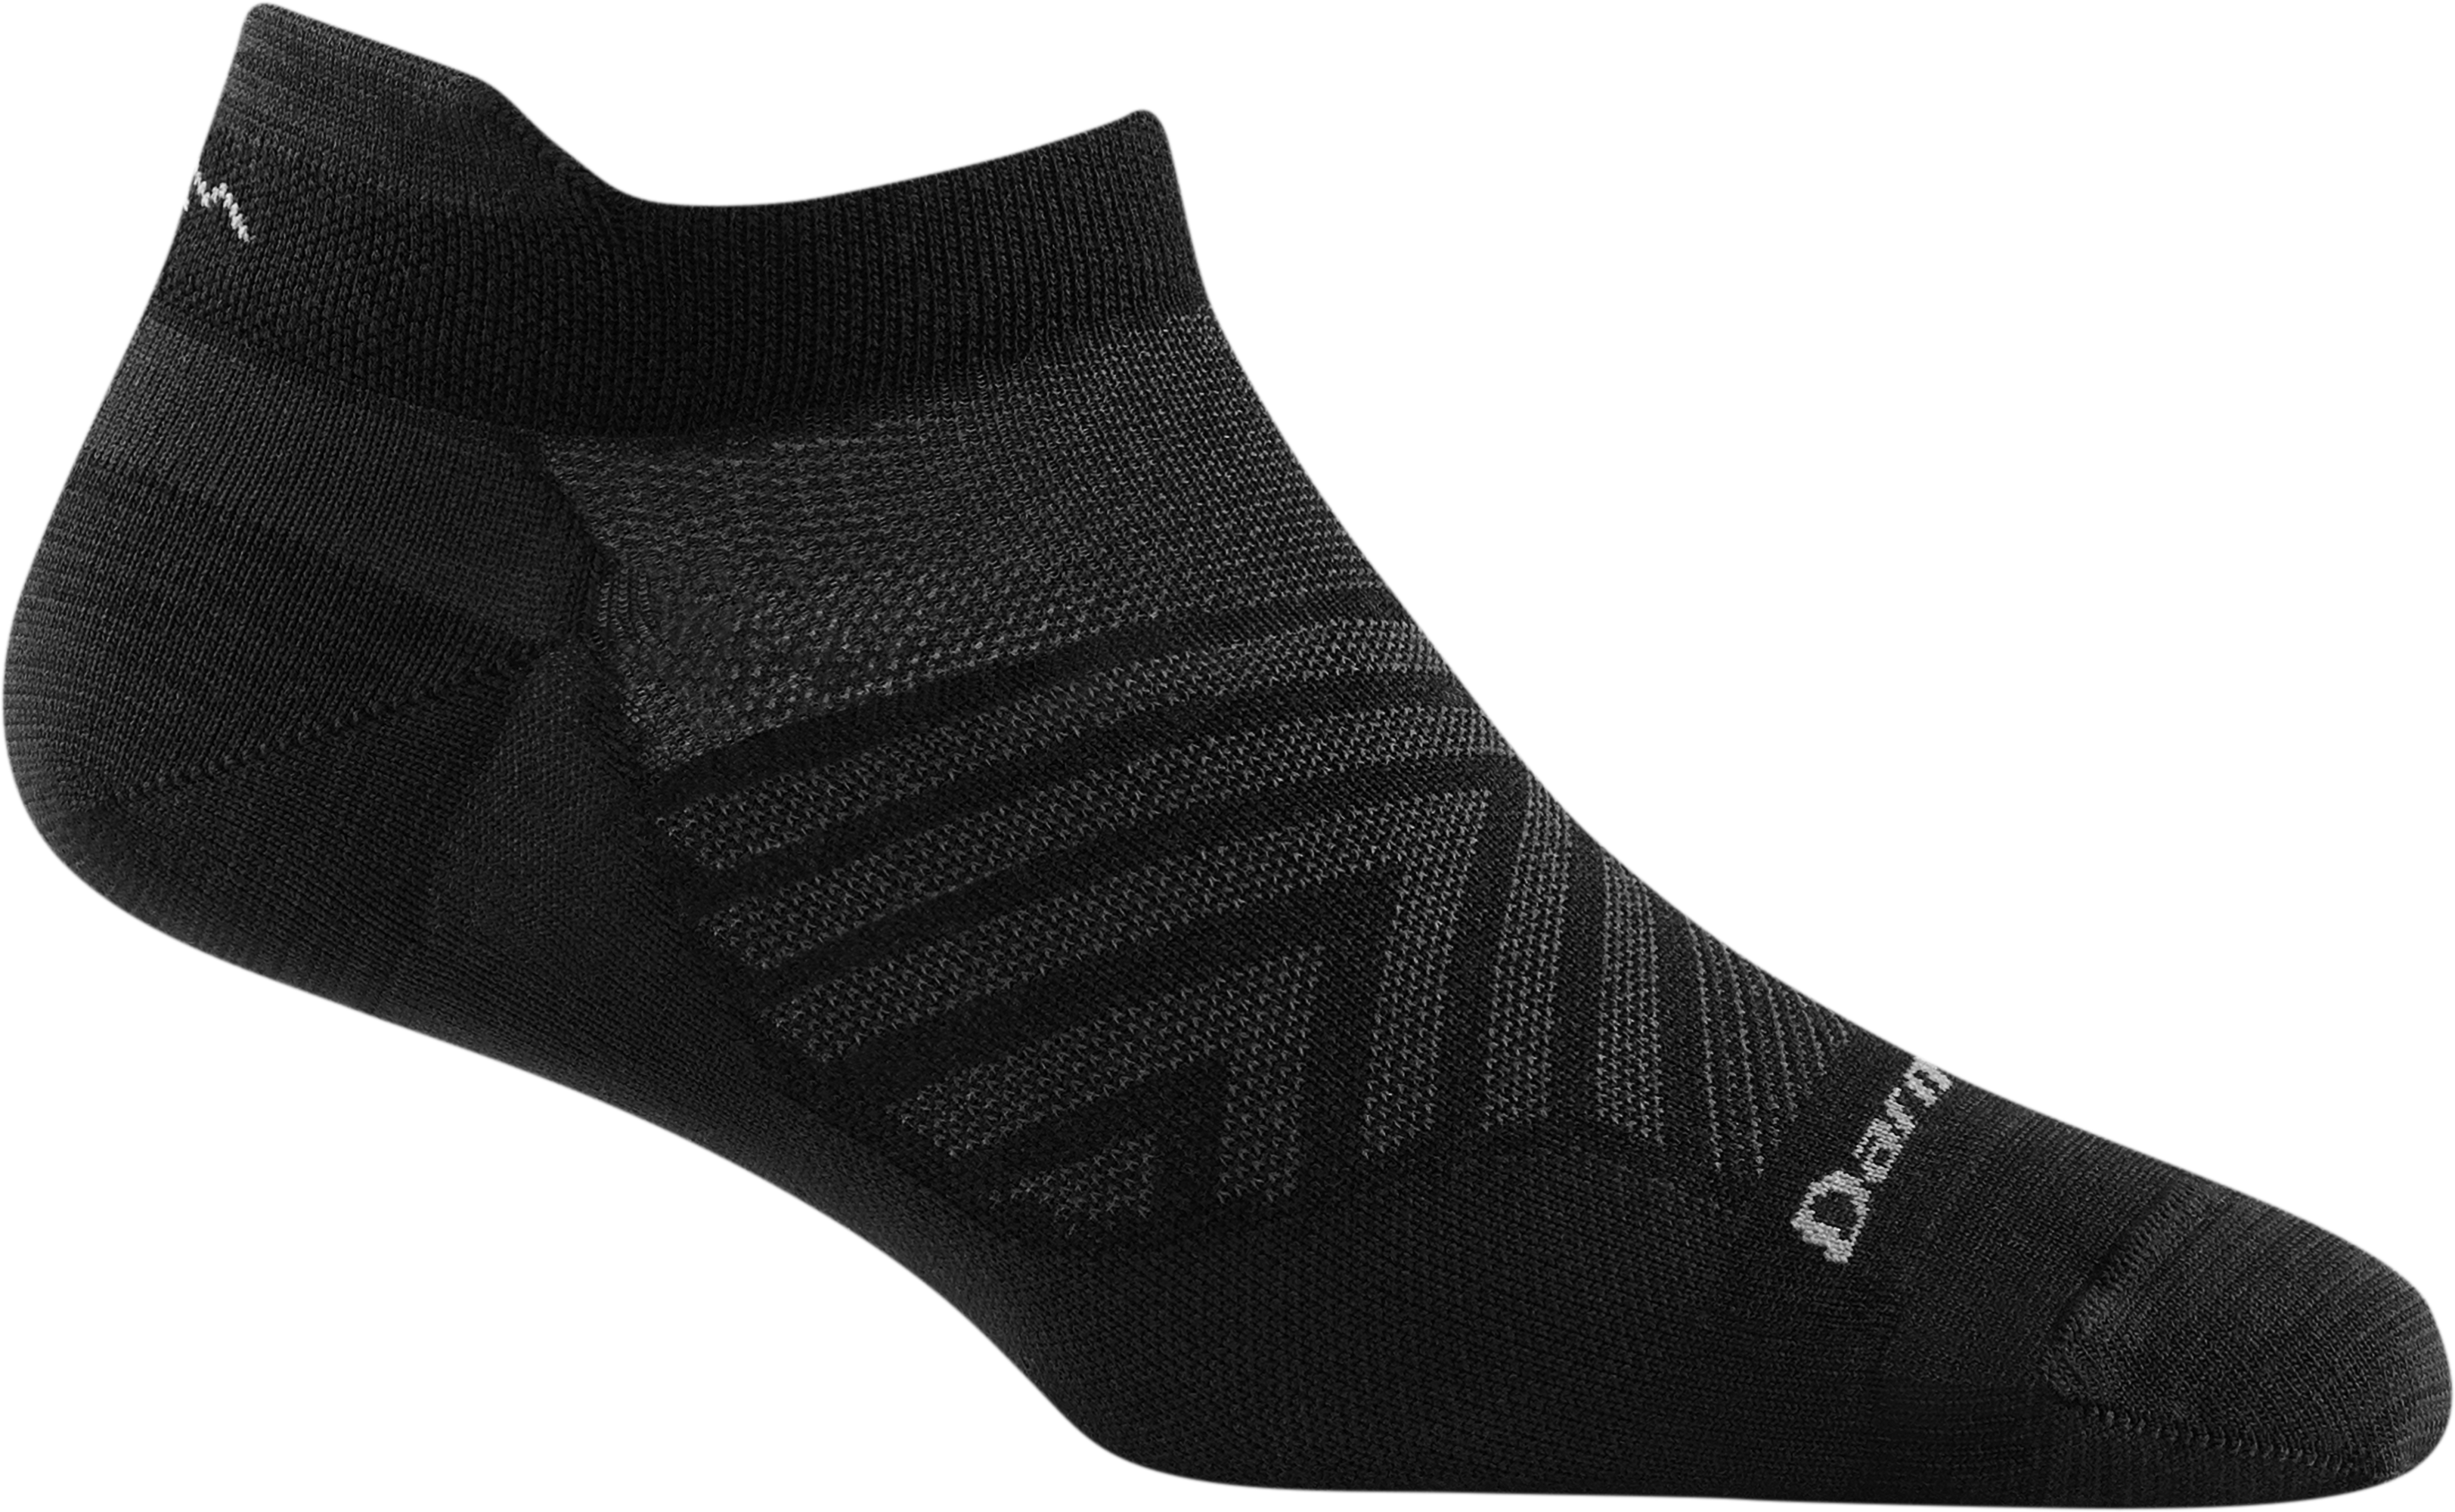 Cushion Location: Ultra-light feel and ultimate next-to-skin profile are staples of our no cushion running socks.. Cushion Weight: For the ultimate like-it's-not-even-there fit and feel, ultra-lightweight yarns give our running socks the lowest in-shoe profile.